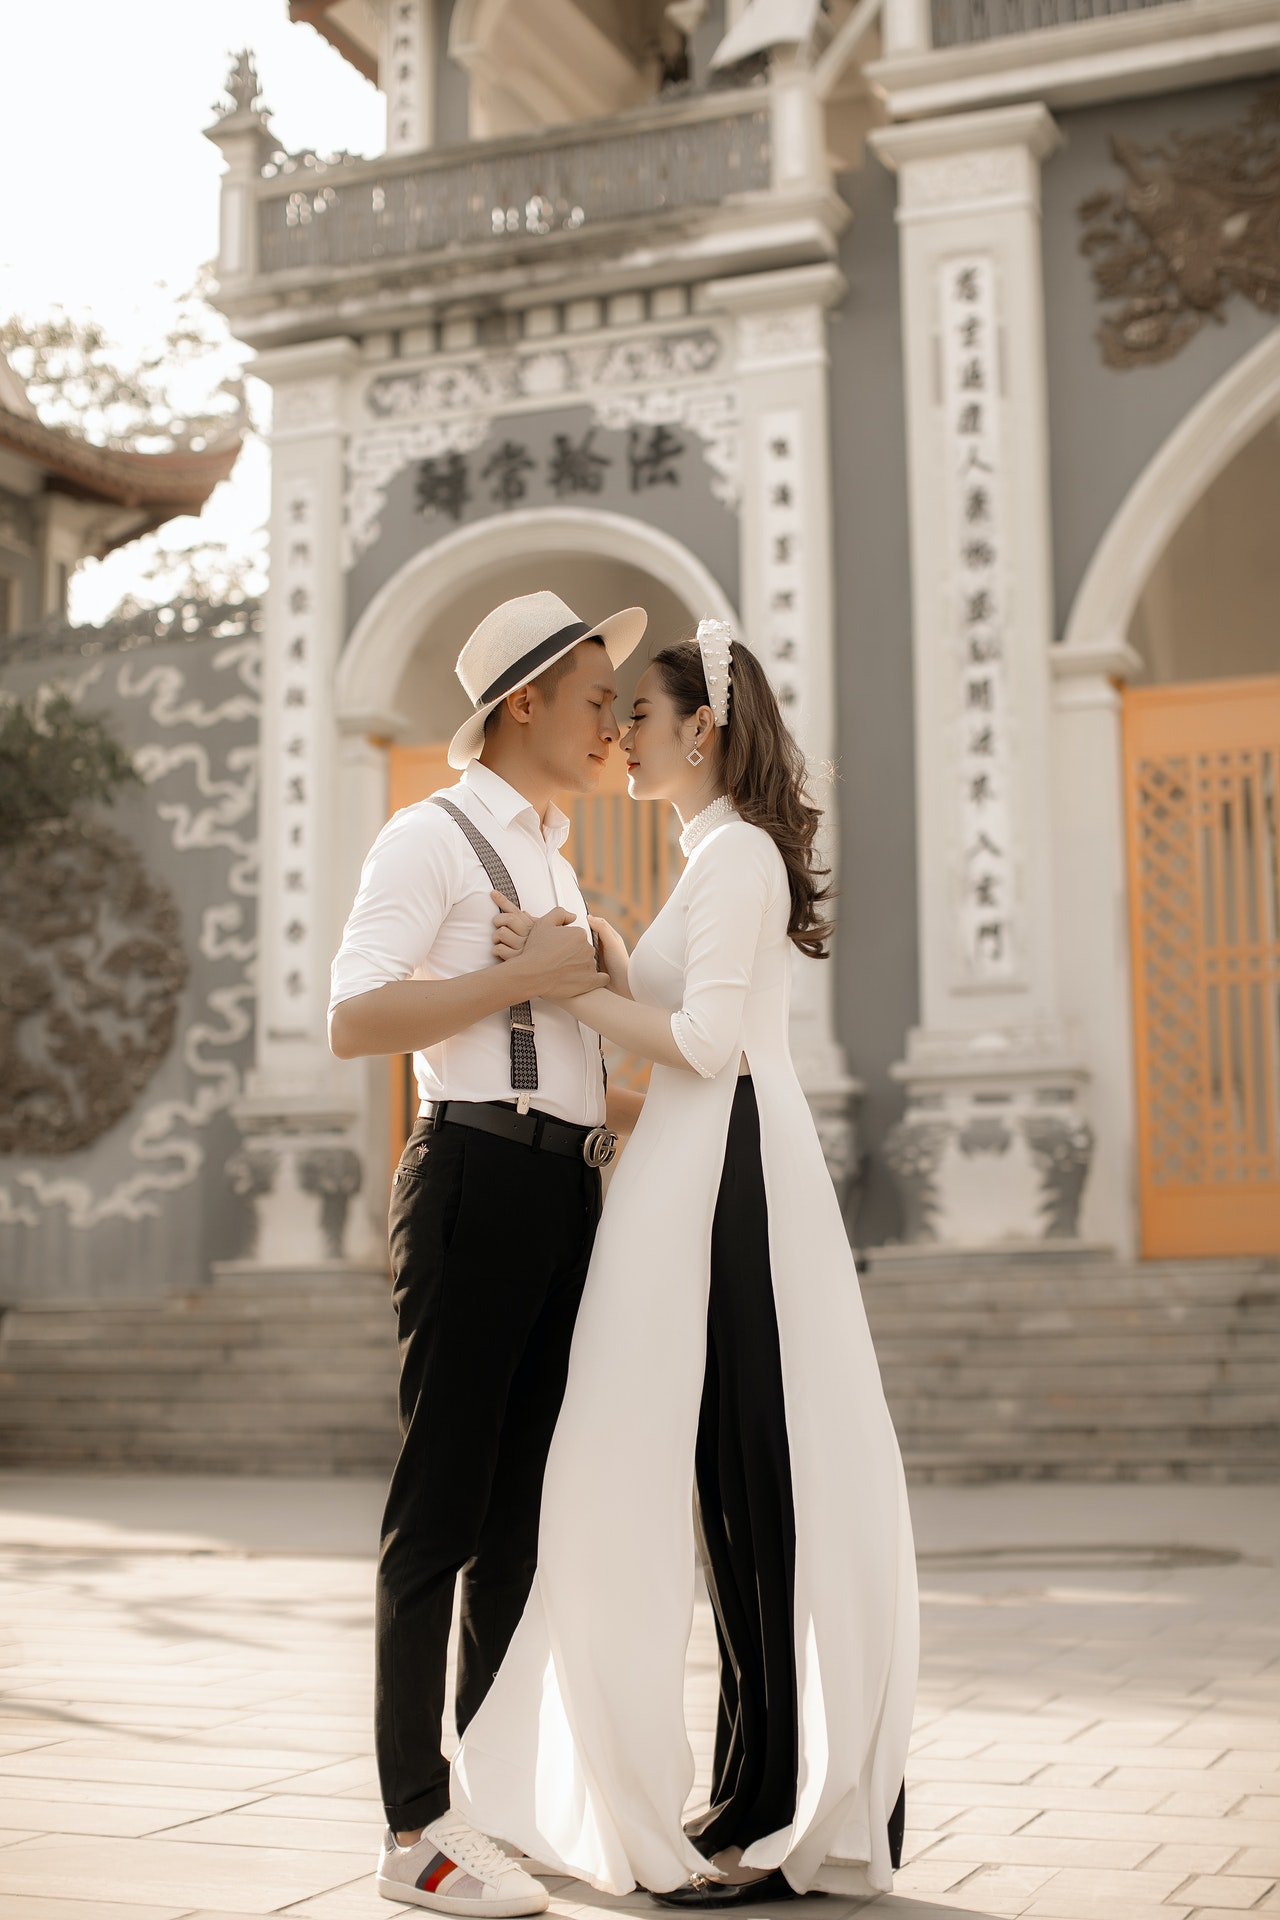 a man dating a Buddhist woman who is wearing Ao Dai